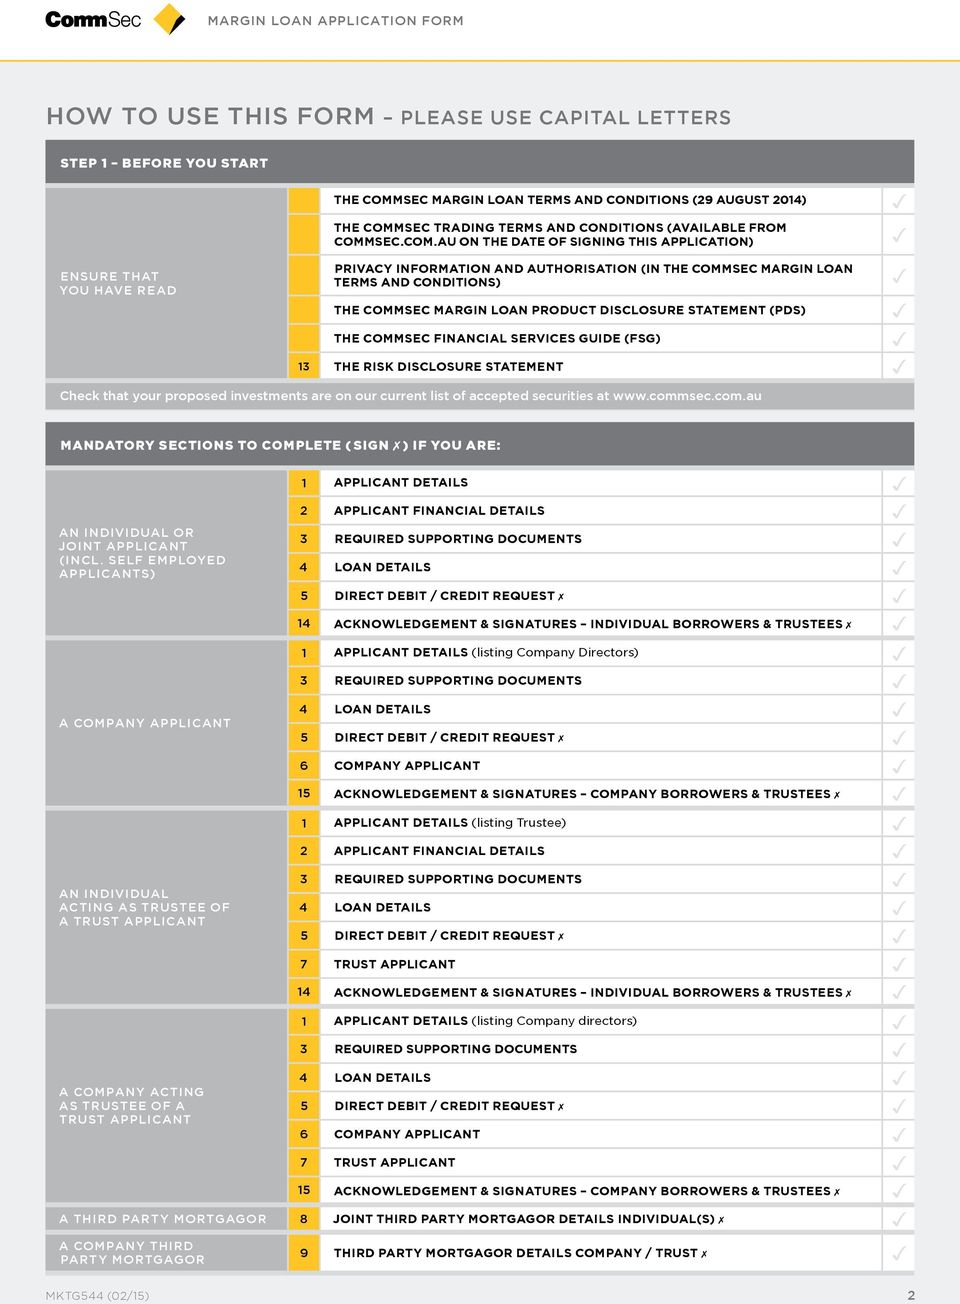 DISCLOSURE MENT (PDS) THE COMMSEC FINANCIAL SERVICES GUIDE (FSG) 13 THE RISK DISCLOSURE MENT Check that your proposed investments are on our current list of accepted securities at www.comm